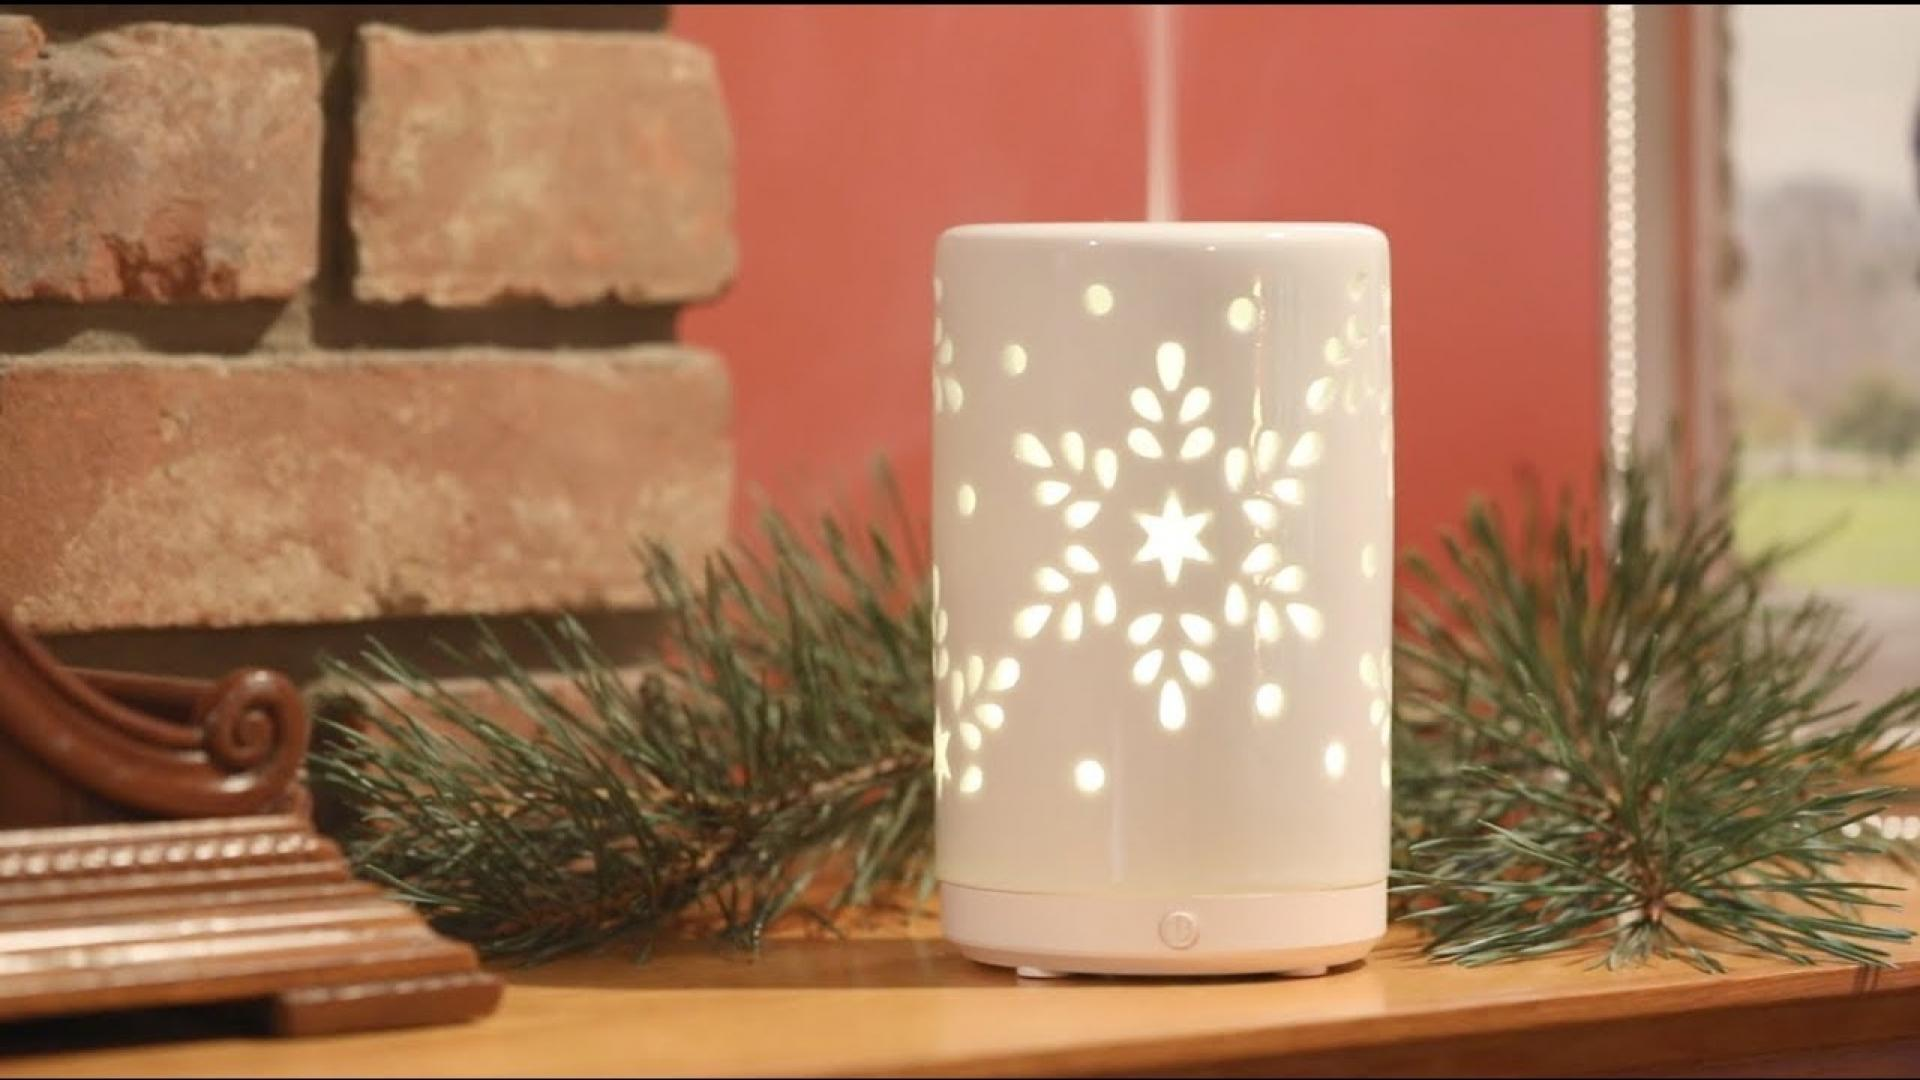 SpaRoom Snowflake Ceramic Holiday Ultrasonic Essential Oil Diffuser